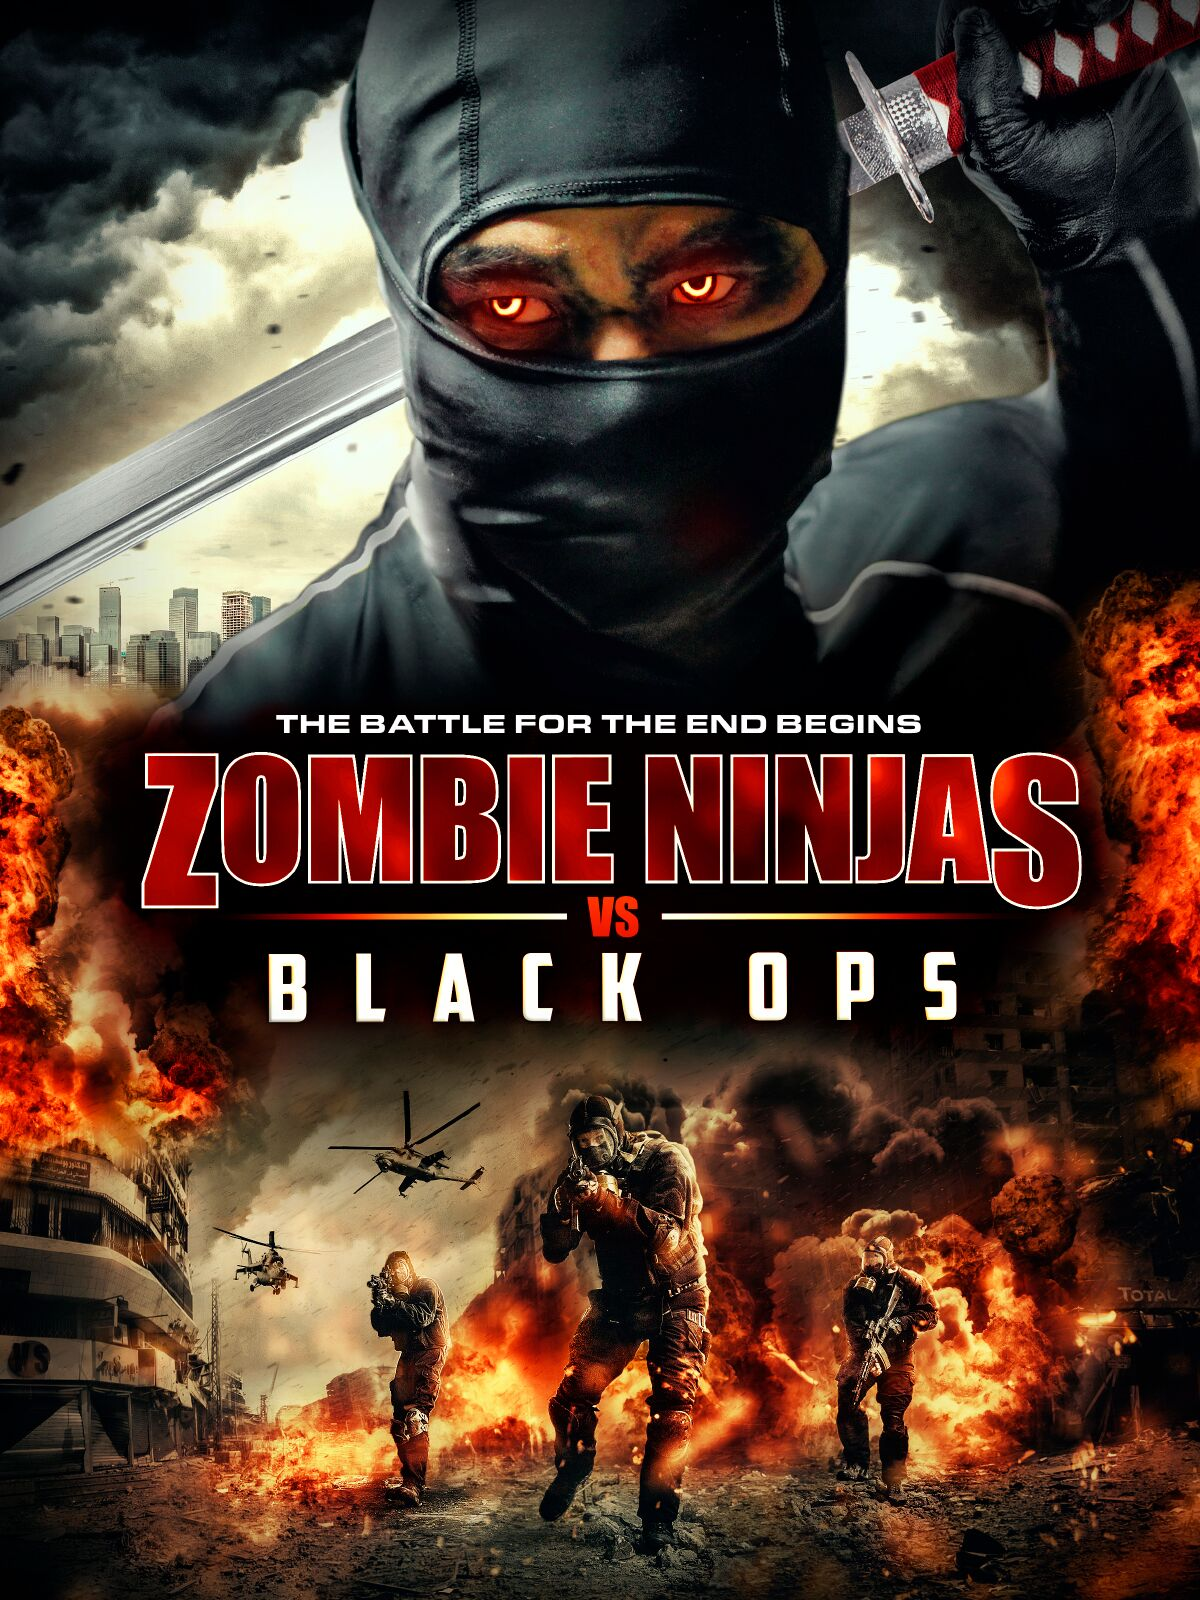 Zombie Ninjas vs Black Ops (2015) English 480p WEB-DL x264 AAC 350MB ESub